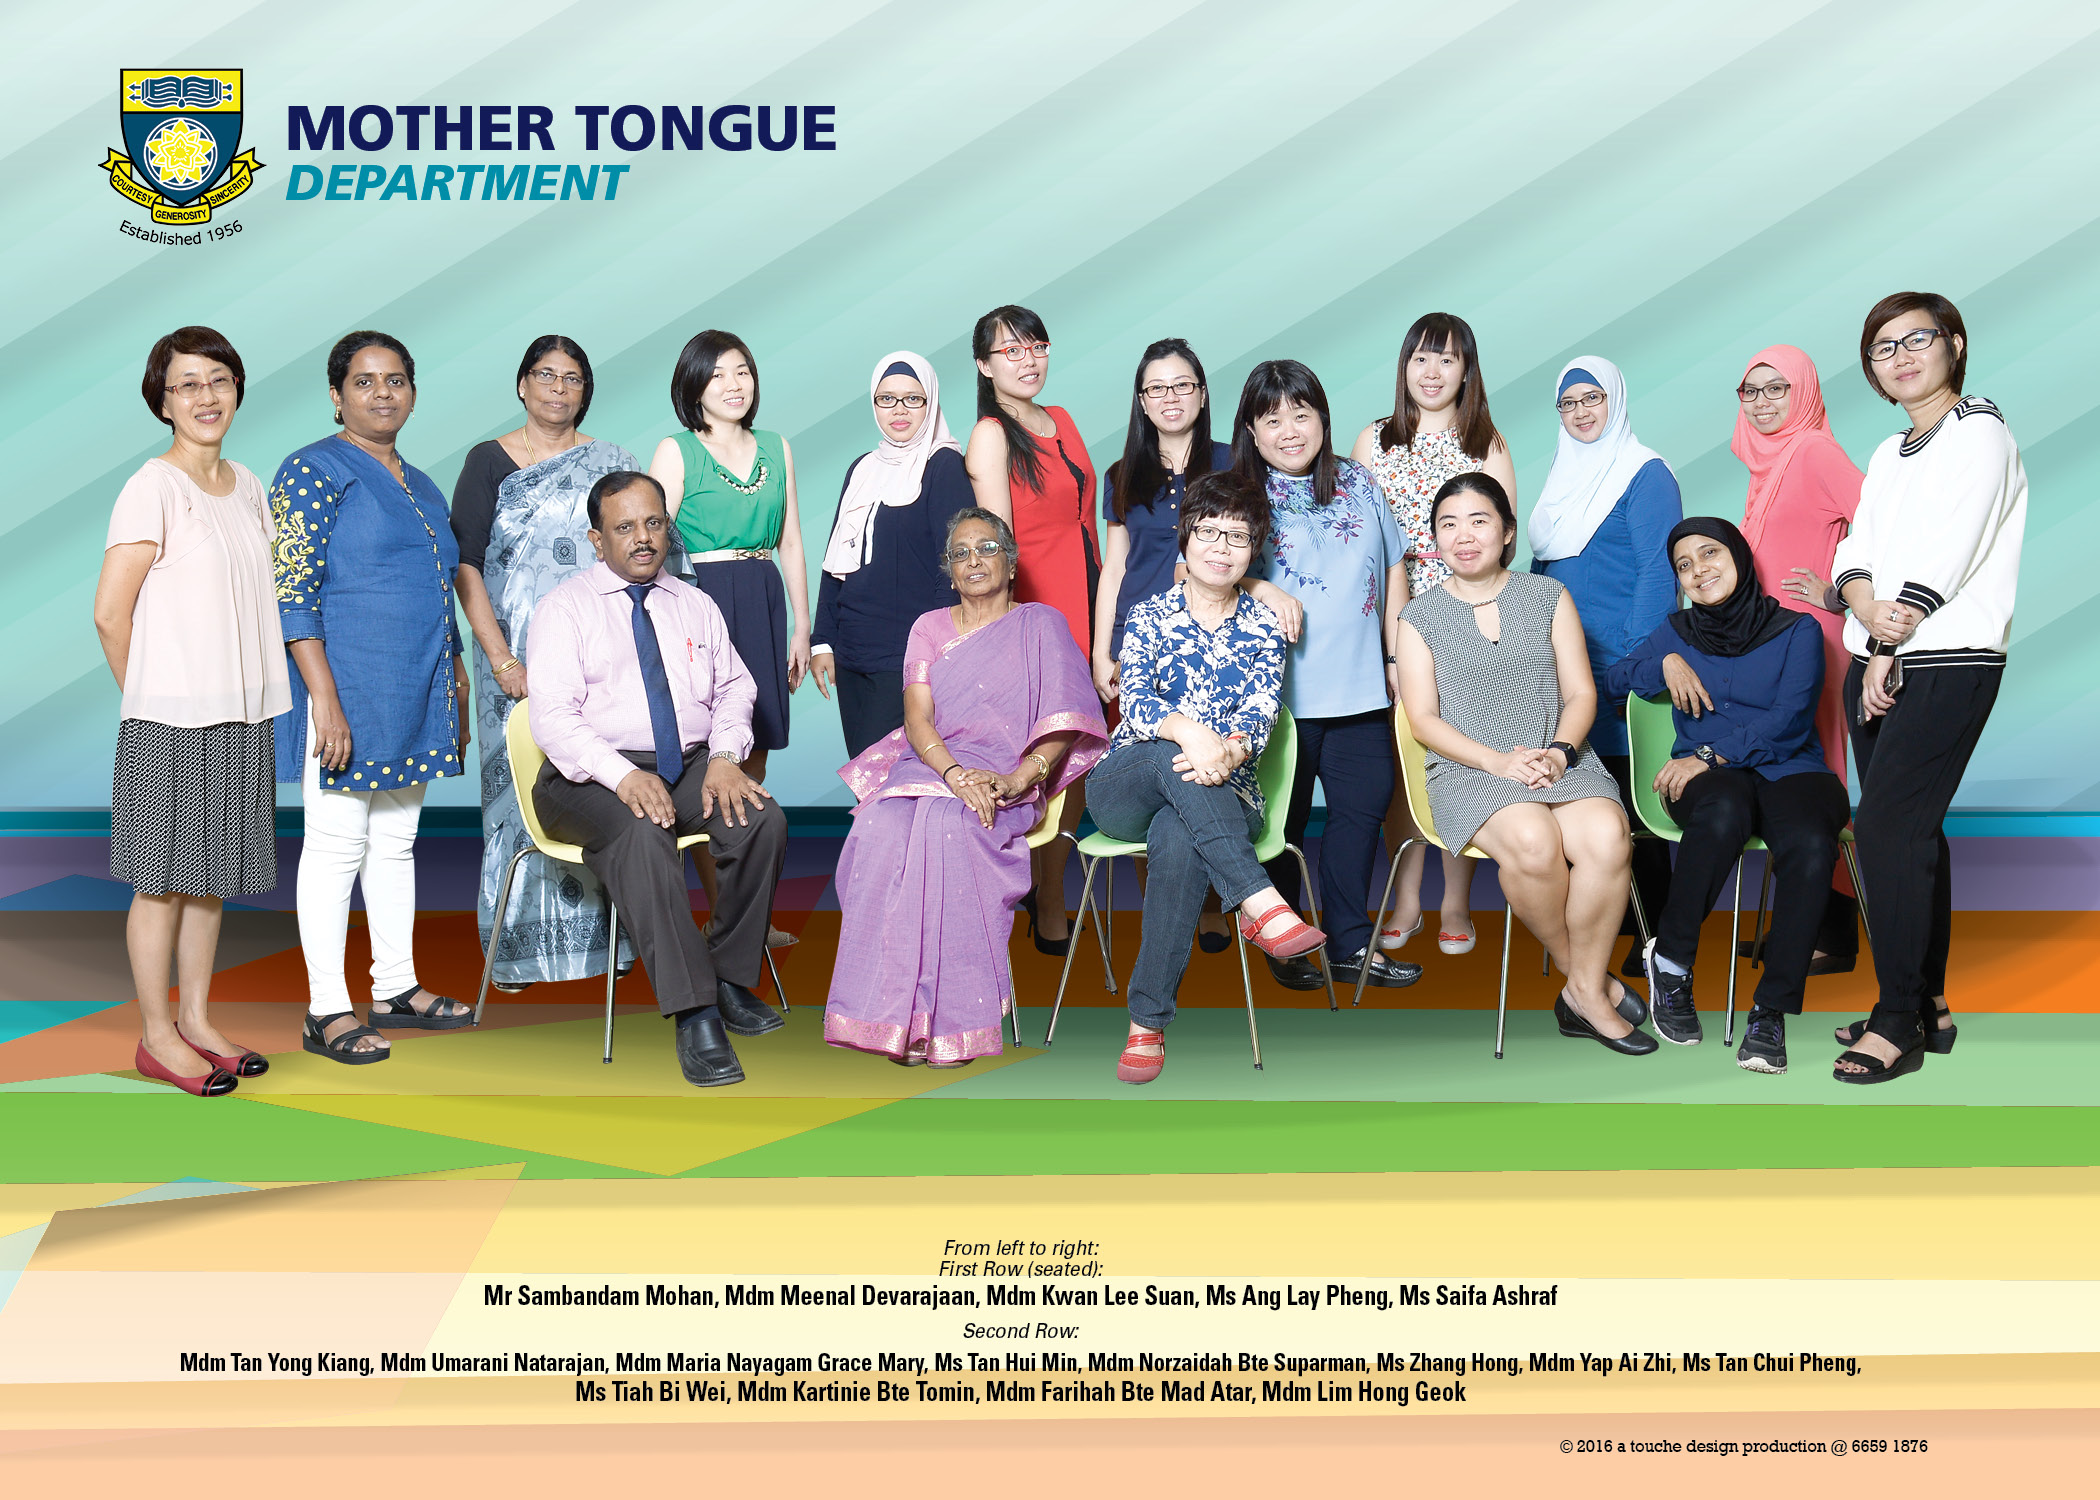 compare and contrast anzuldua how to tame a wild tongue and tan mother tongue on bilingualism Anzaldua, how to tame a wild tongue: amy tan, mother tongue: a compare and contrast presentational project.